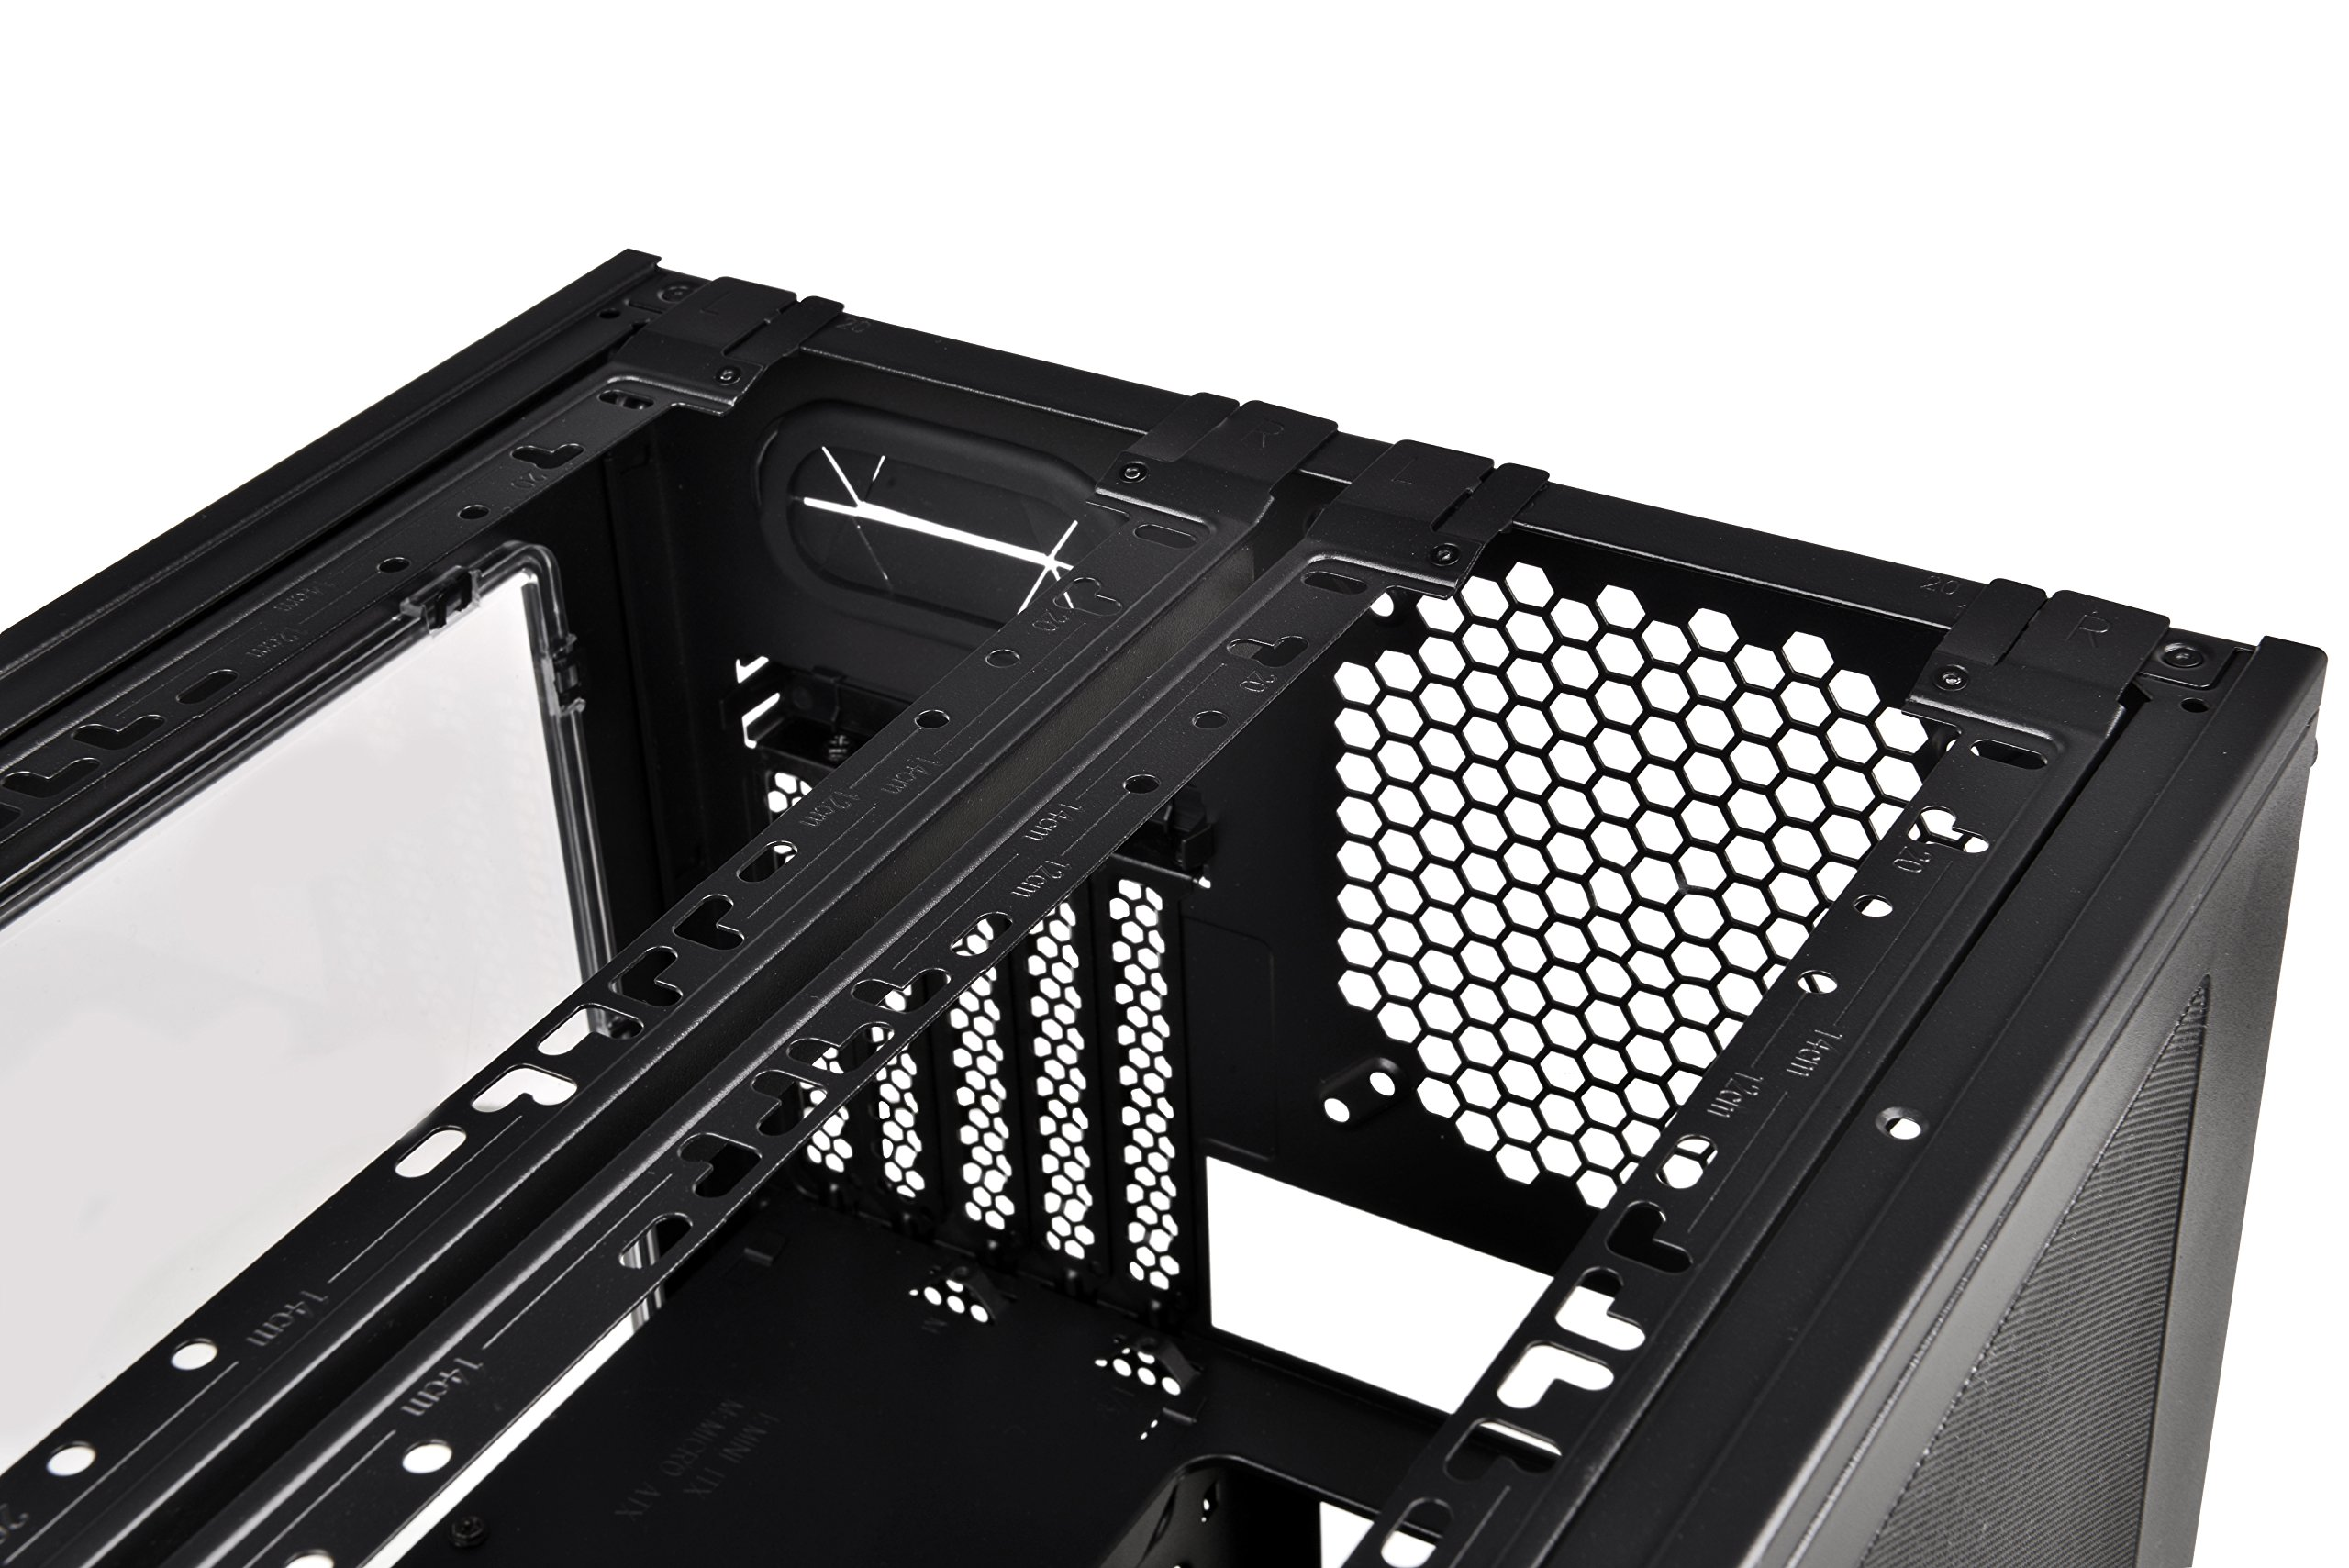 Thermaltake Core V21 SPCC Micro ATX, Mini ITX Cube Gaming Computer Case Chassis, Small Form Factor Builds, 200mm Front Fan Pre-installed, CA-1D5-00S1WN-00 by Thermaltake (Image #11)